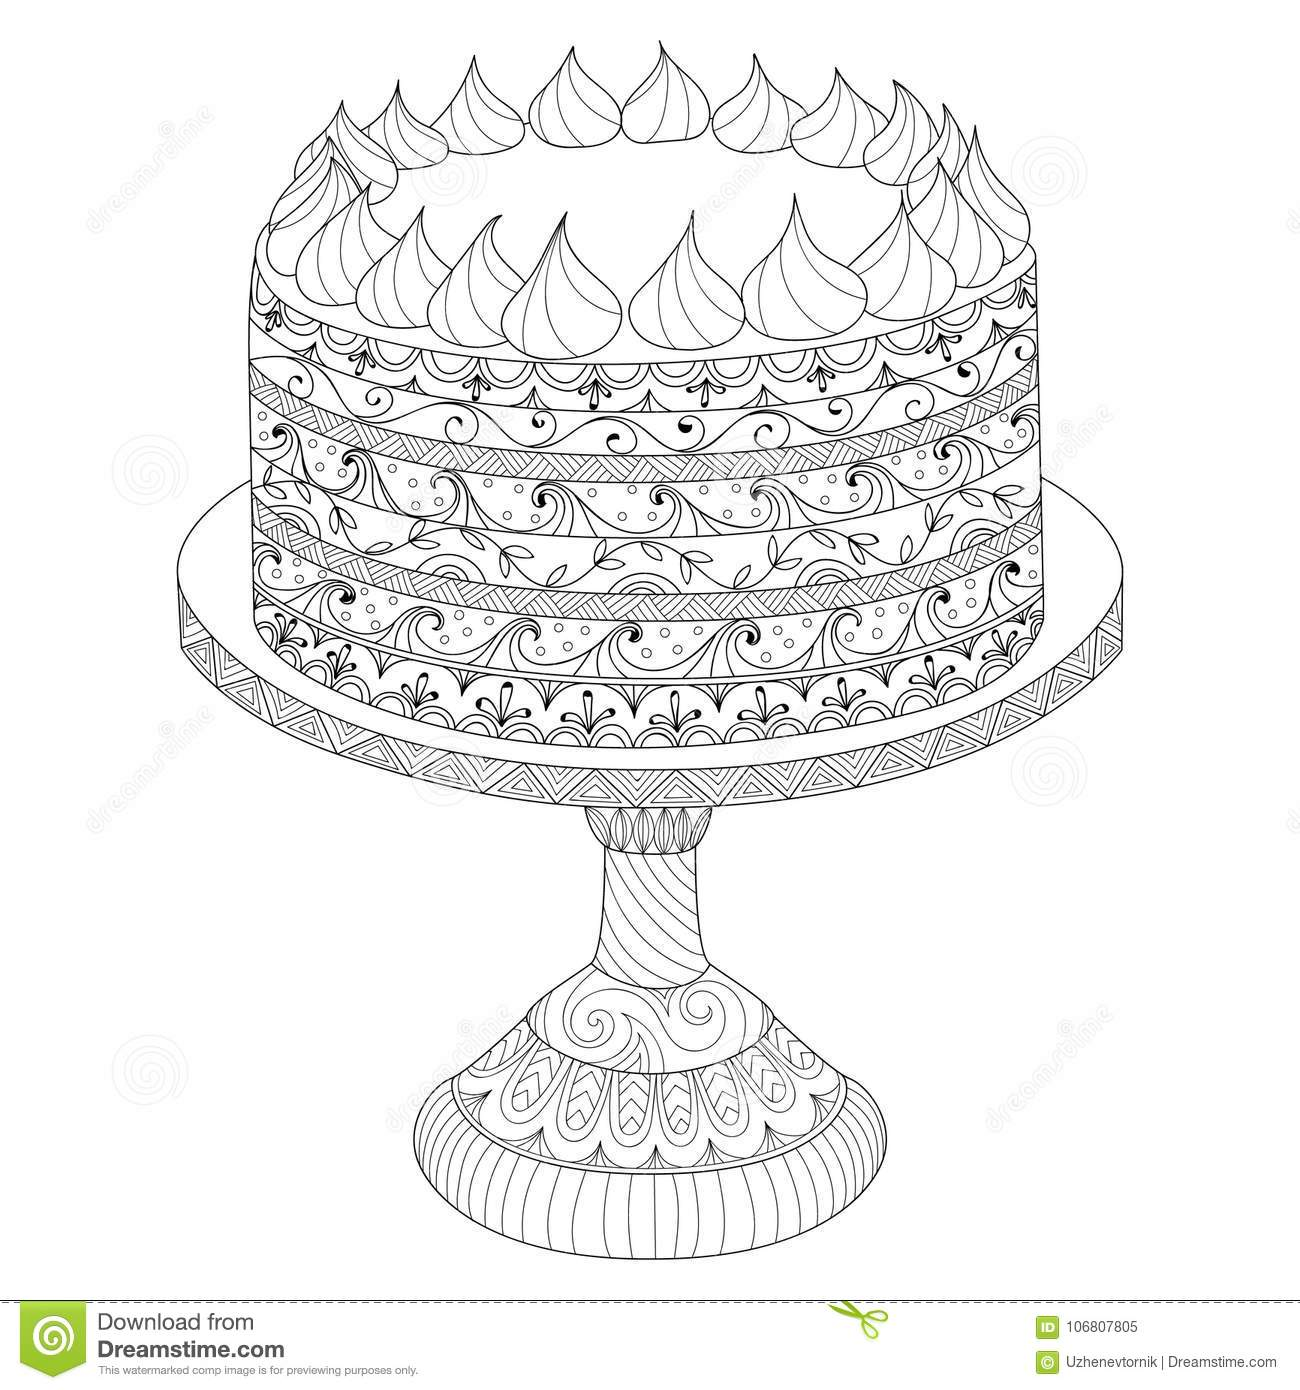 Hand Drawn Cake For Coloring Book Stock Vector Illustration Of